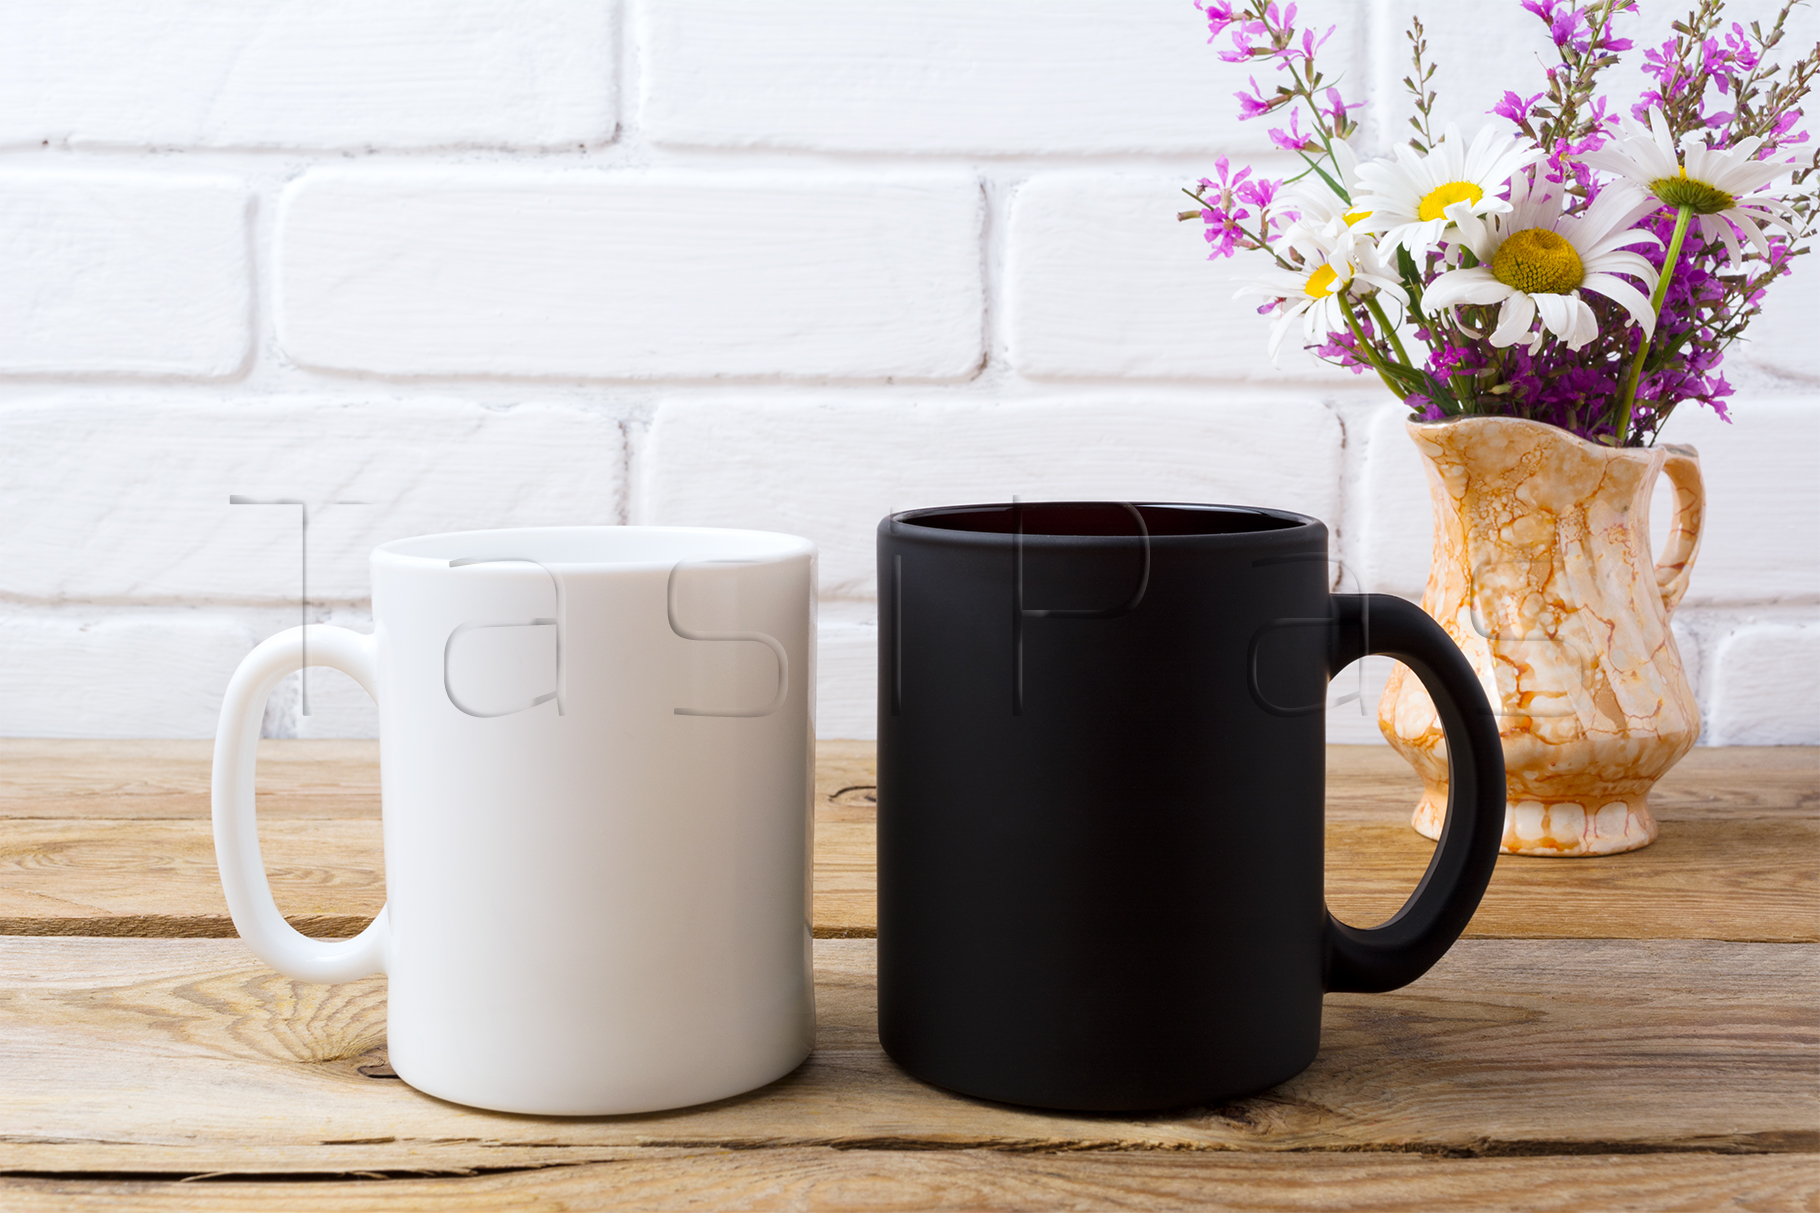 White and black coffee mug mockup with white chamomile and purple field flowers in golden pitcher vase. example image 2